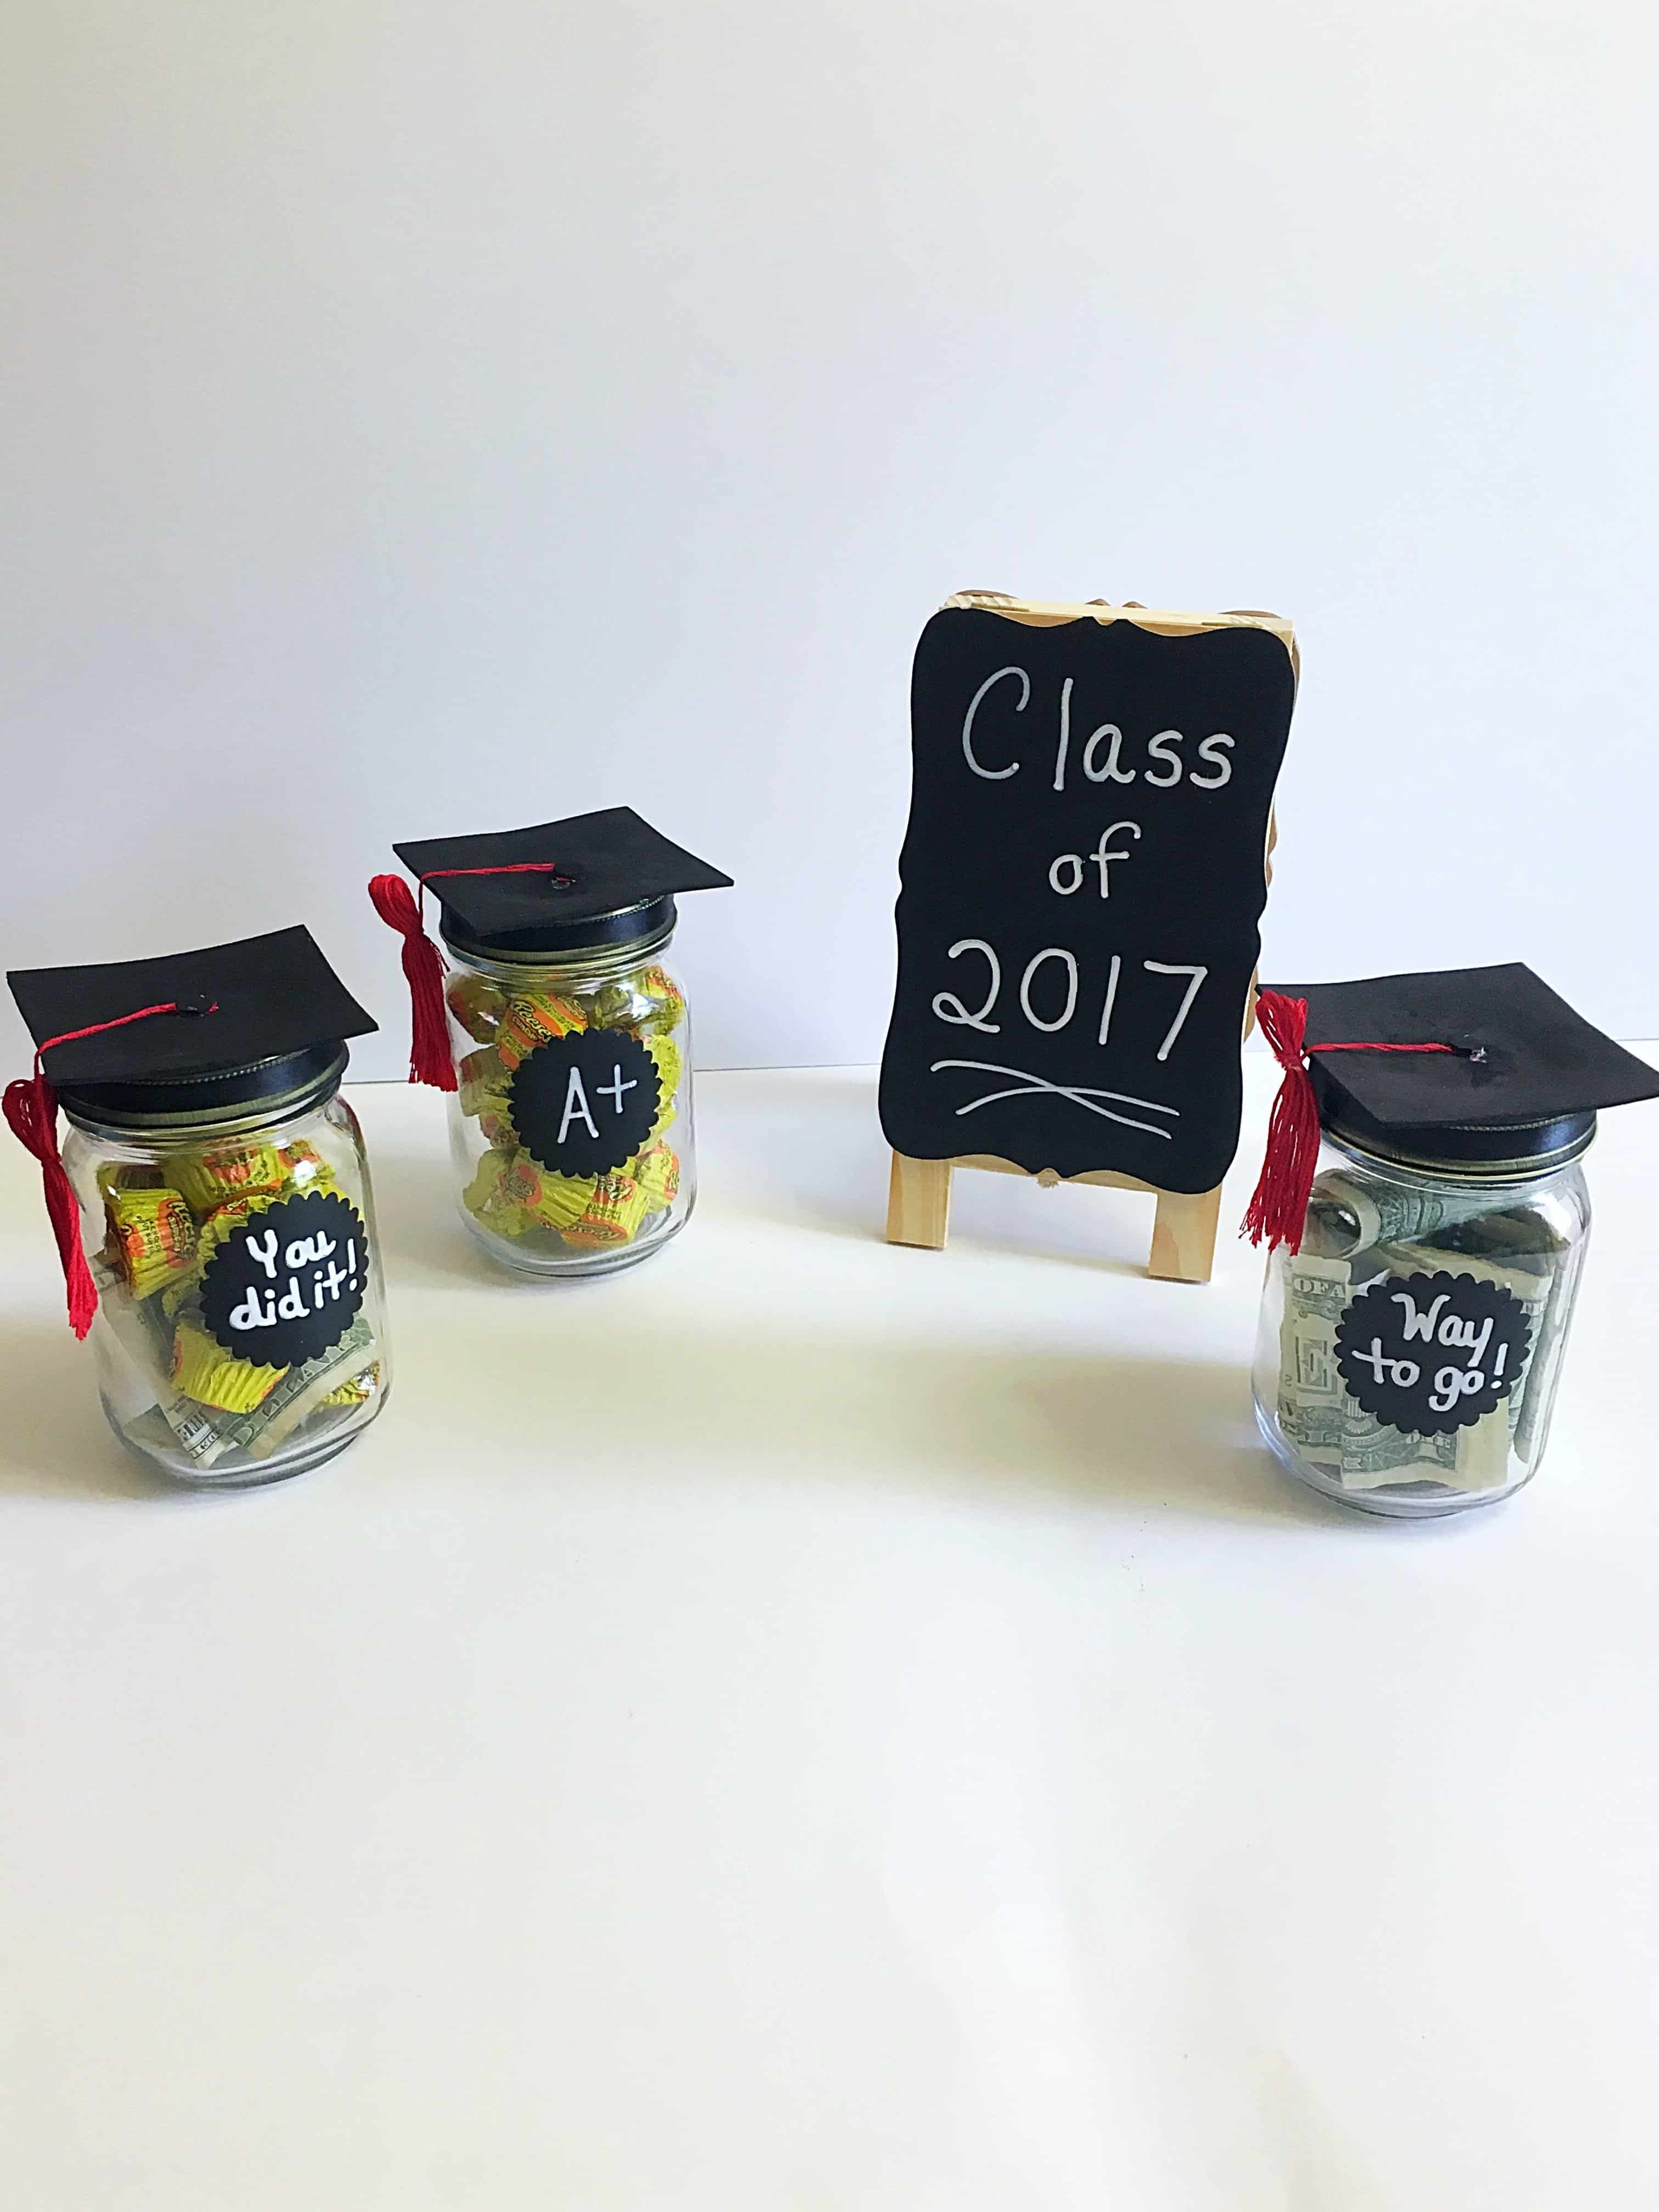 Looking for the perfect graduation gift idea for him or her? These DIY Adorable Graduation Cap Mason Jars are so fun and easy to make and are perfect for gifting to your graduate- whether they're graduating from kindergarten, high school, or college! Get creative and fill up these graduation cap mason jars with dollar bills, candy, or something personal and make your graduate's day unforgettable!#diygraduation #masonjarcrafts